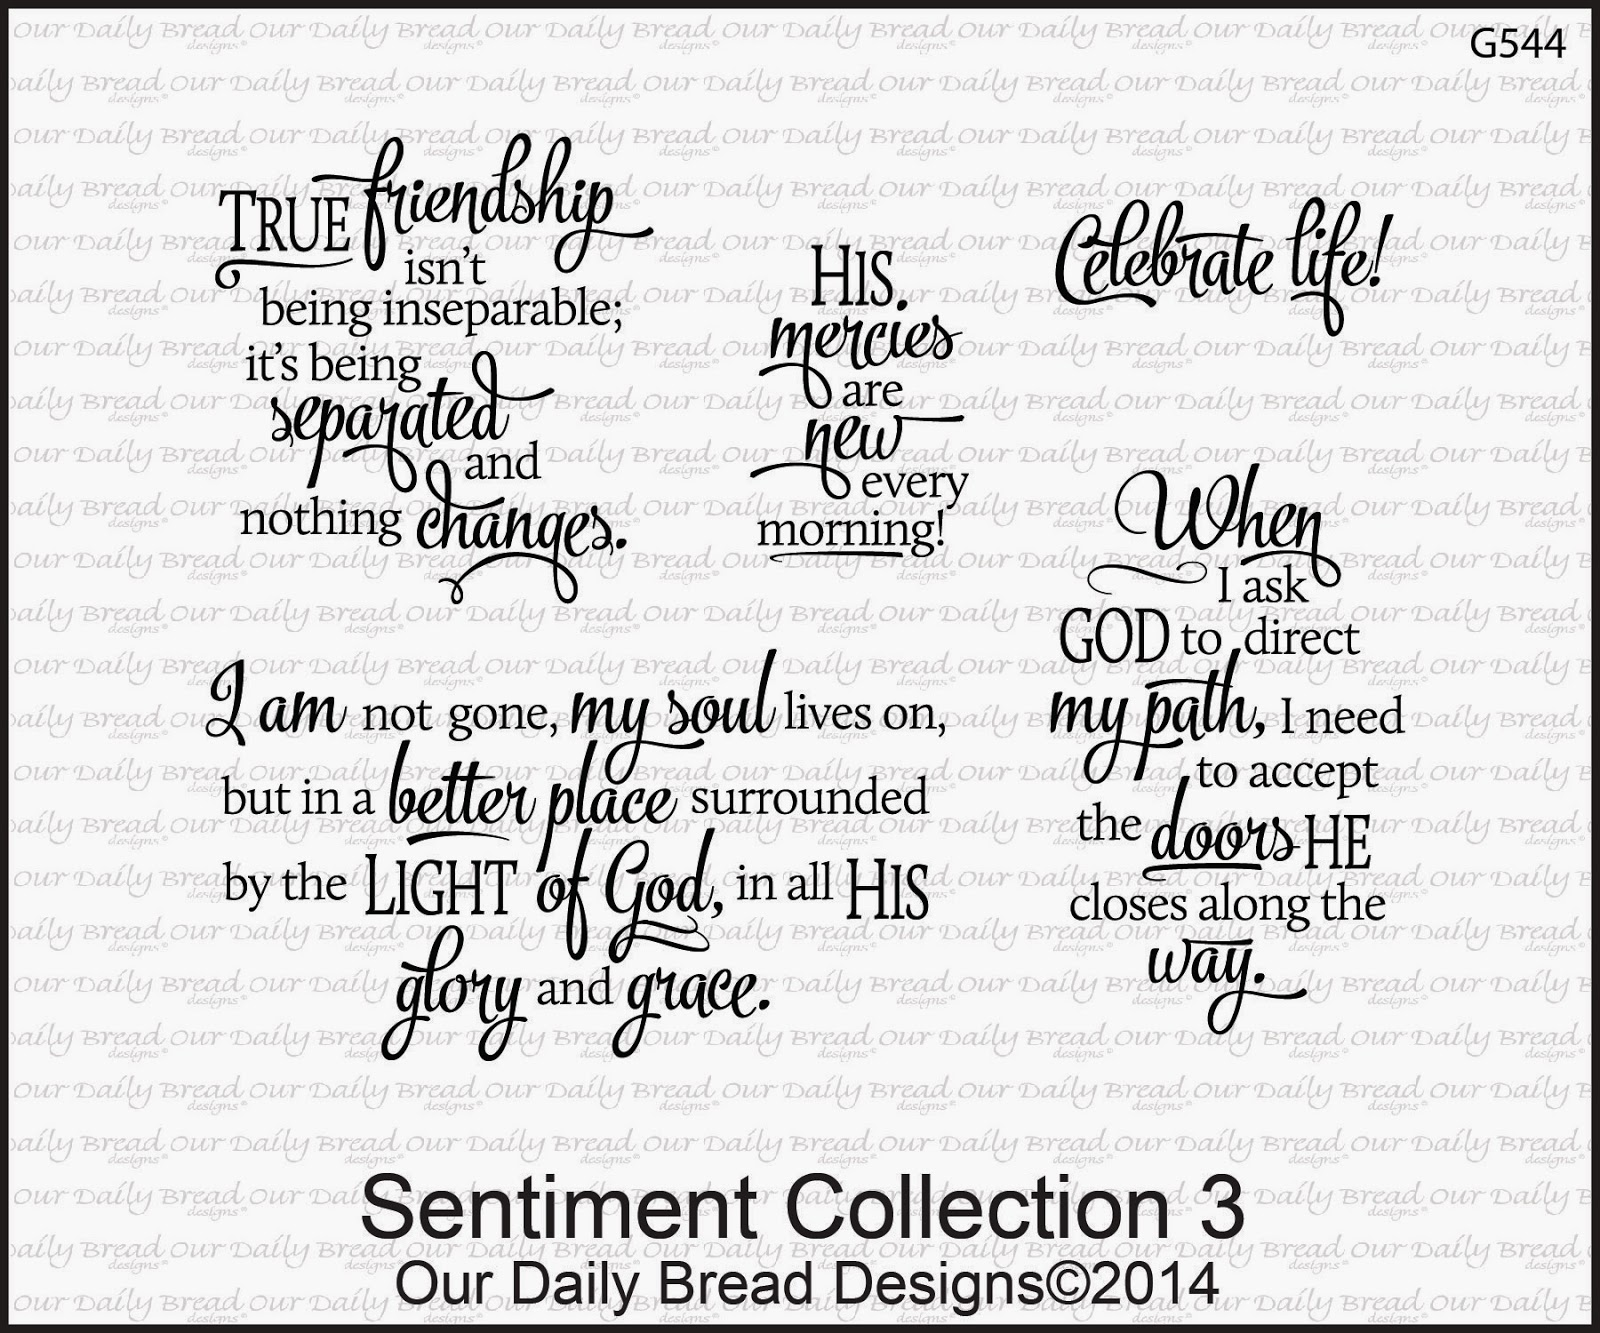 Our Daily Bread designs Sentiments Collection 3